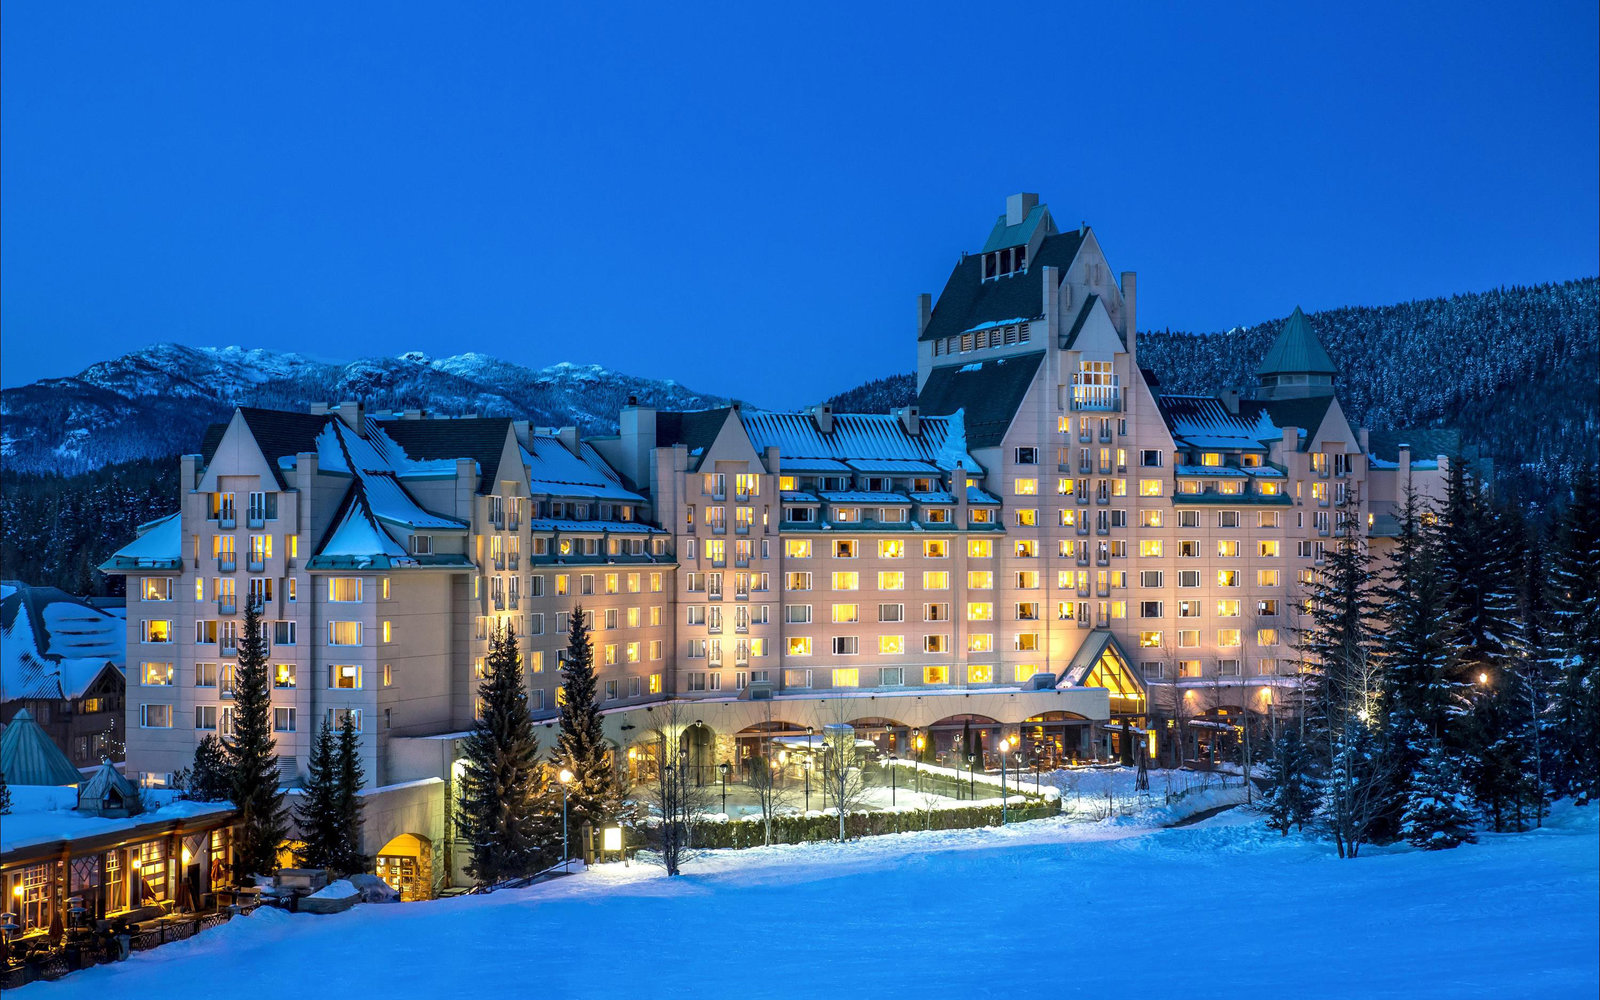 No. 7: Fairmont Chateau Whistler, British Columbia